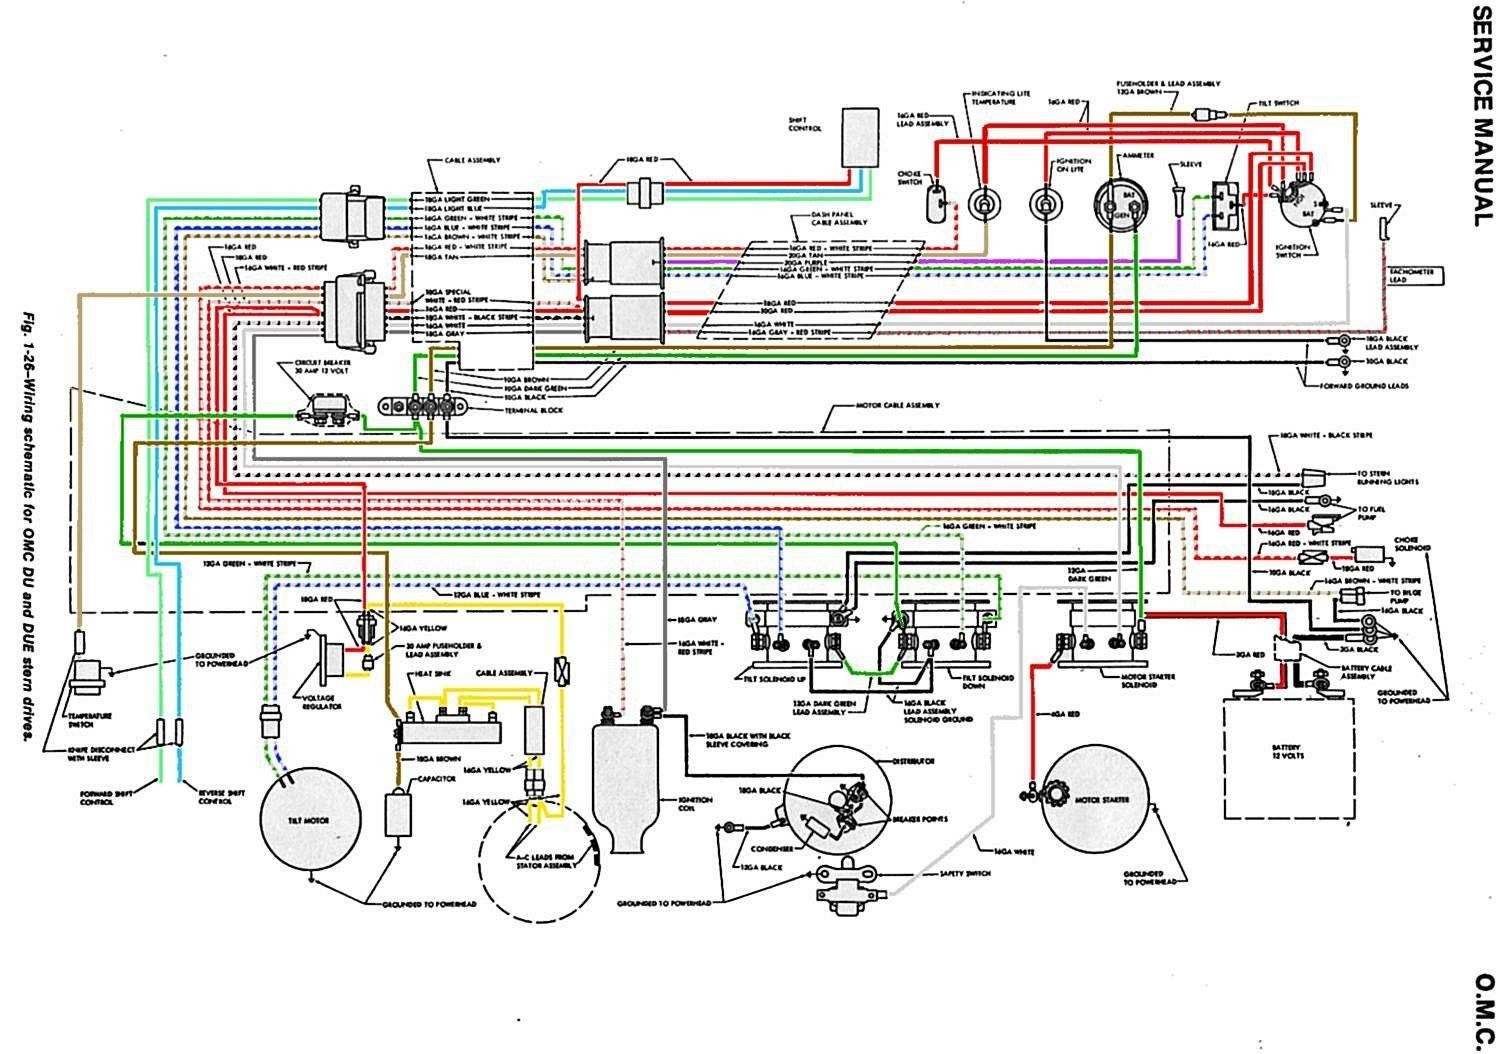 40 Hp Mercury Outboard Wiring Diagram New In 2020 Mercury Outboard Outboard Diagram